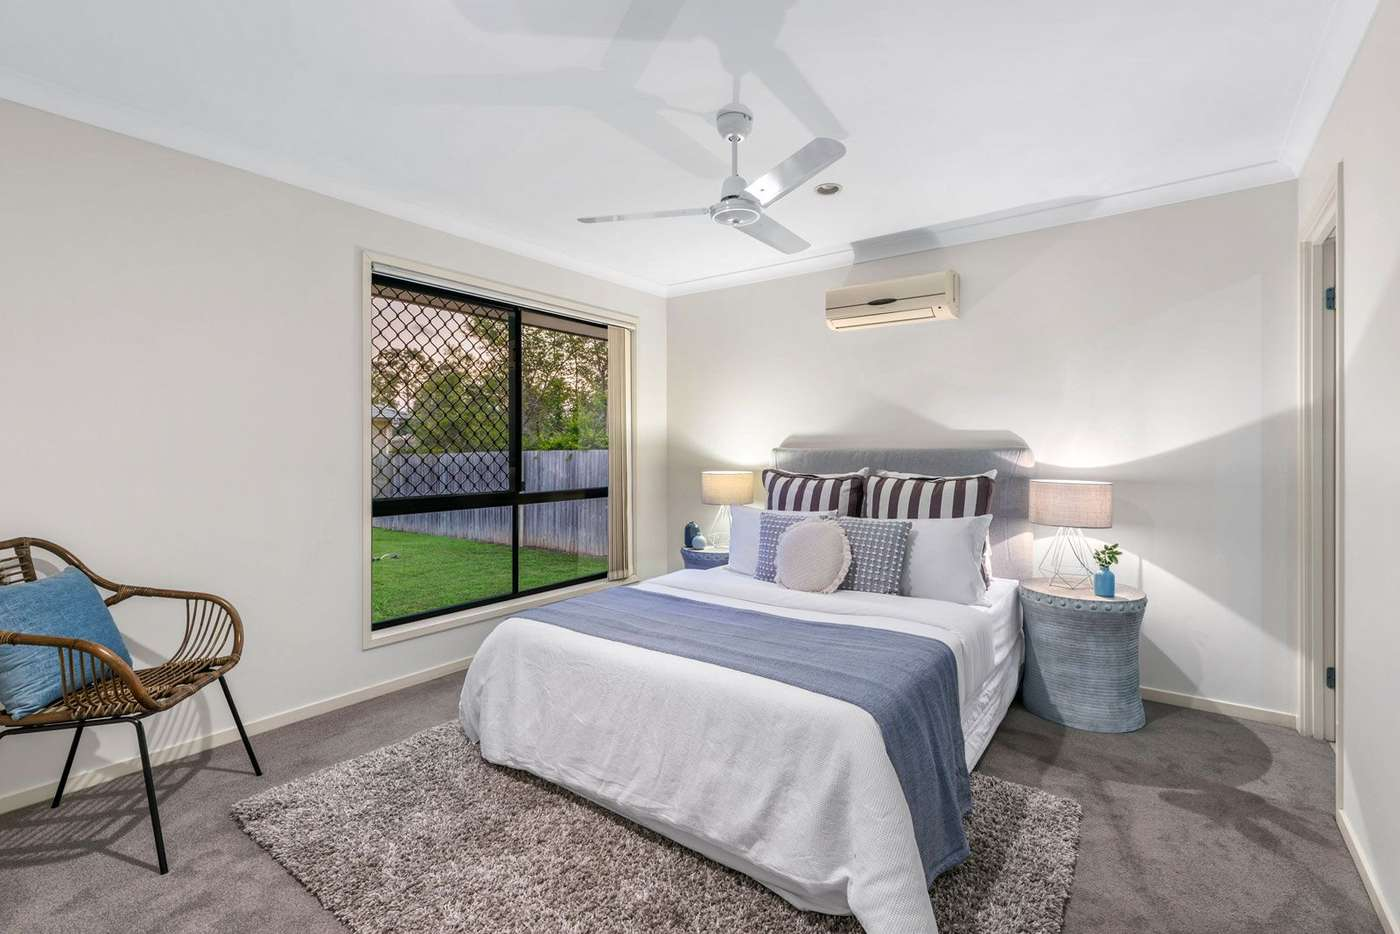 Sixth view of Homely house listing, 9 Duncan Crescent, Joyner QLD 4500